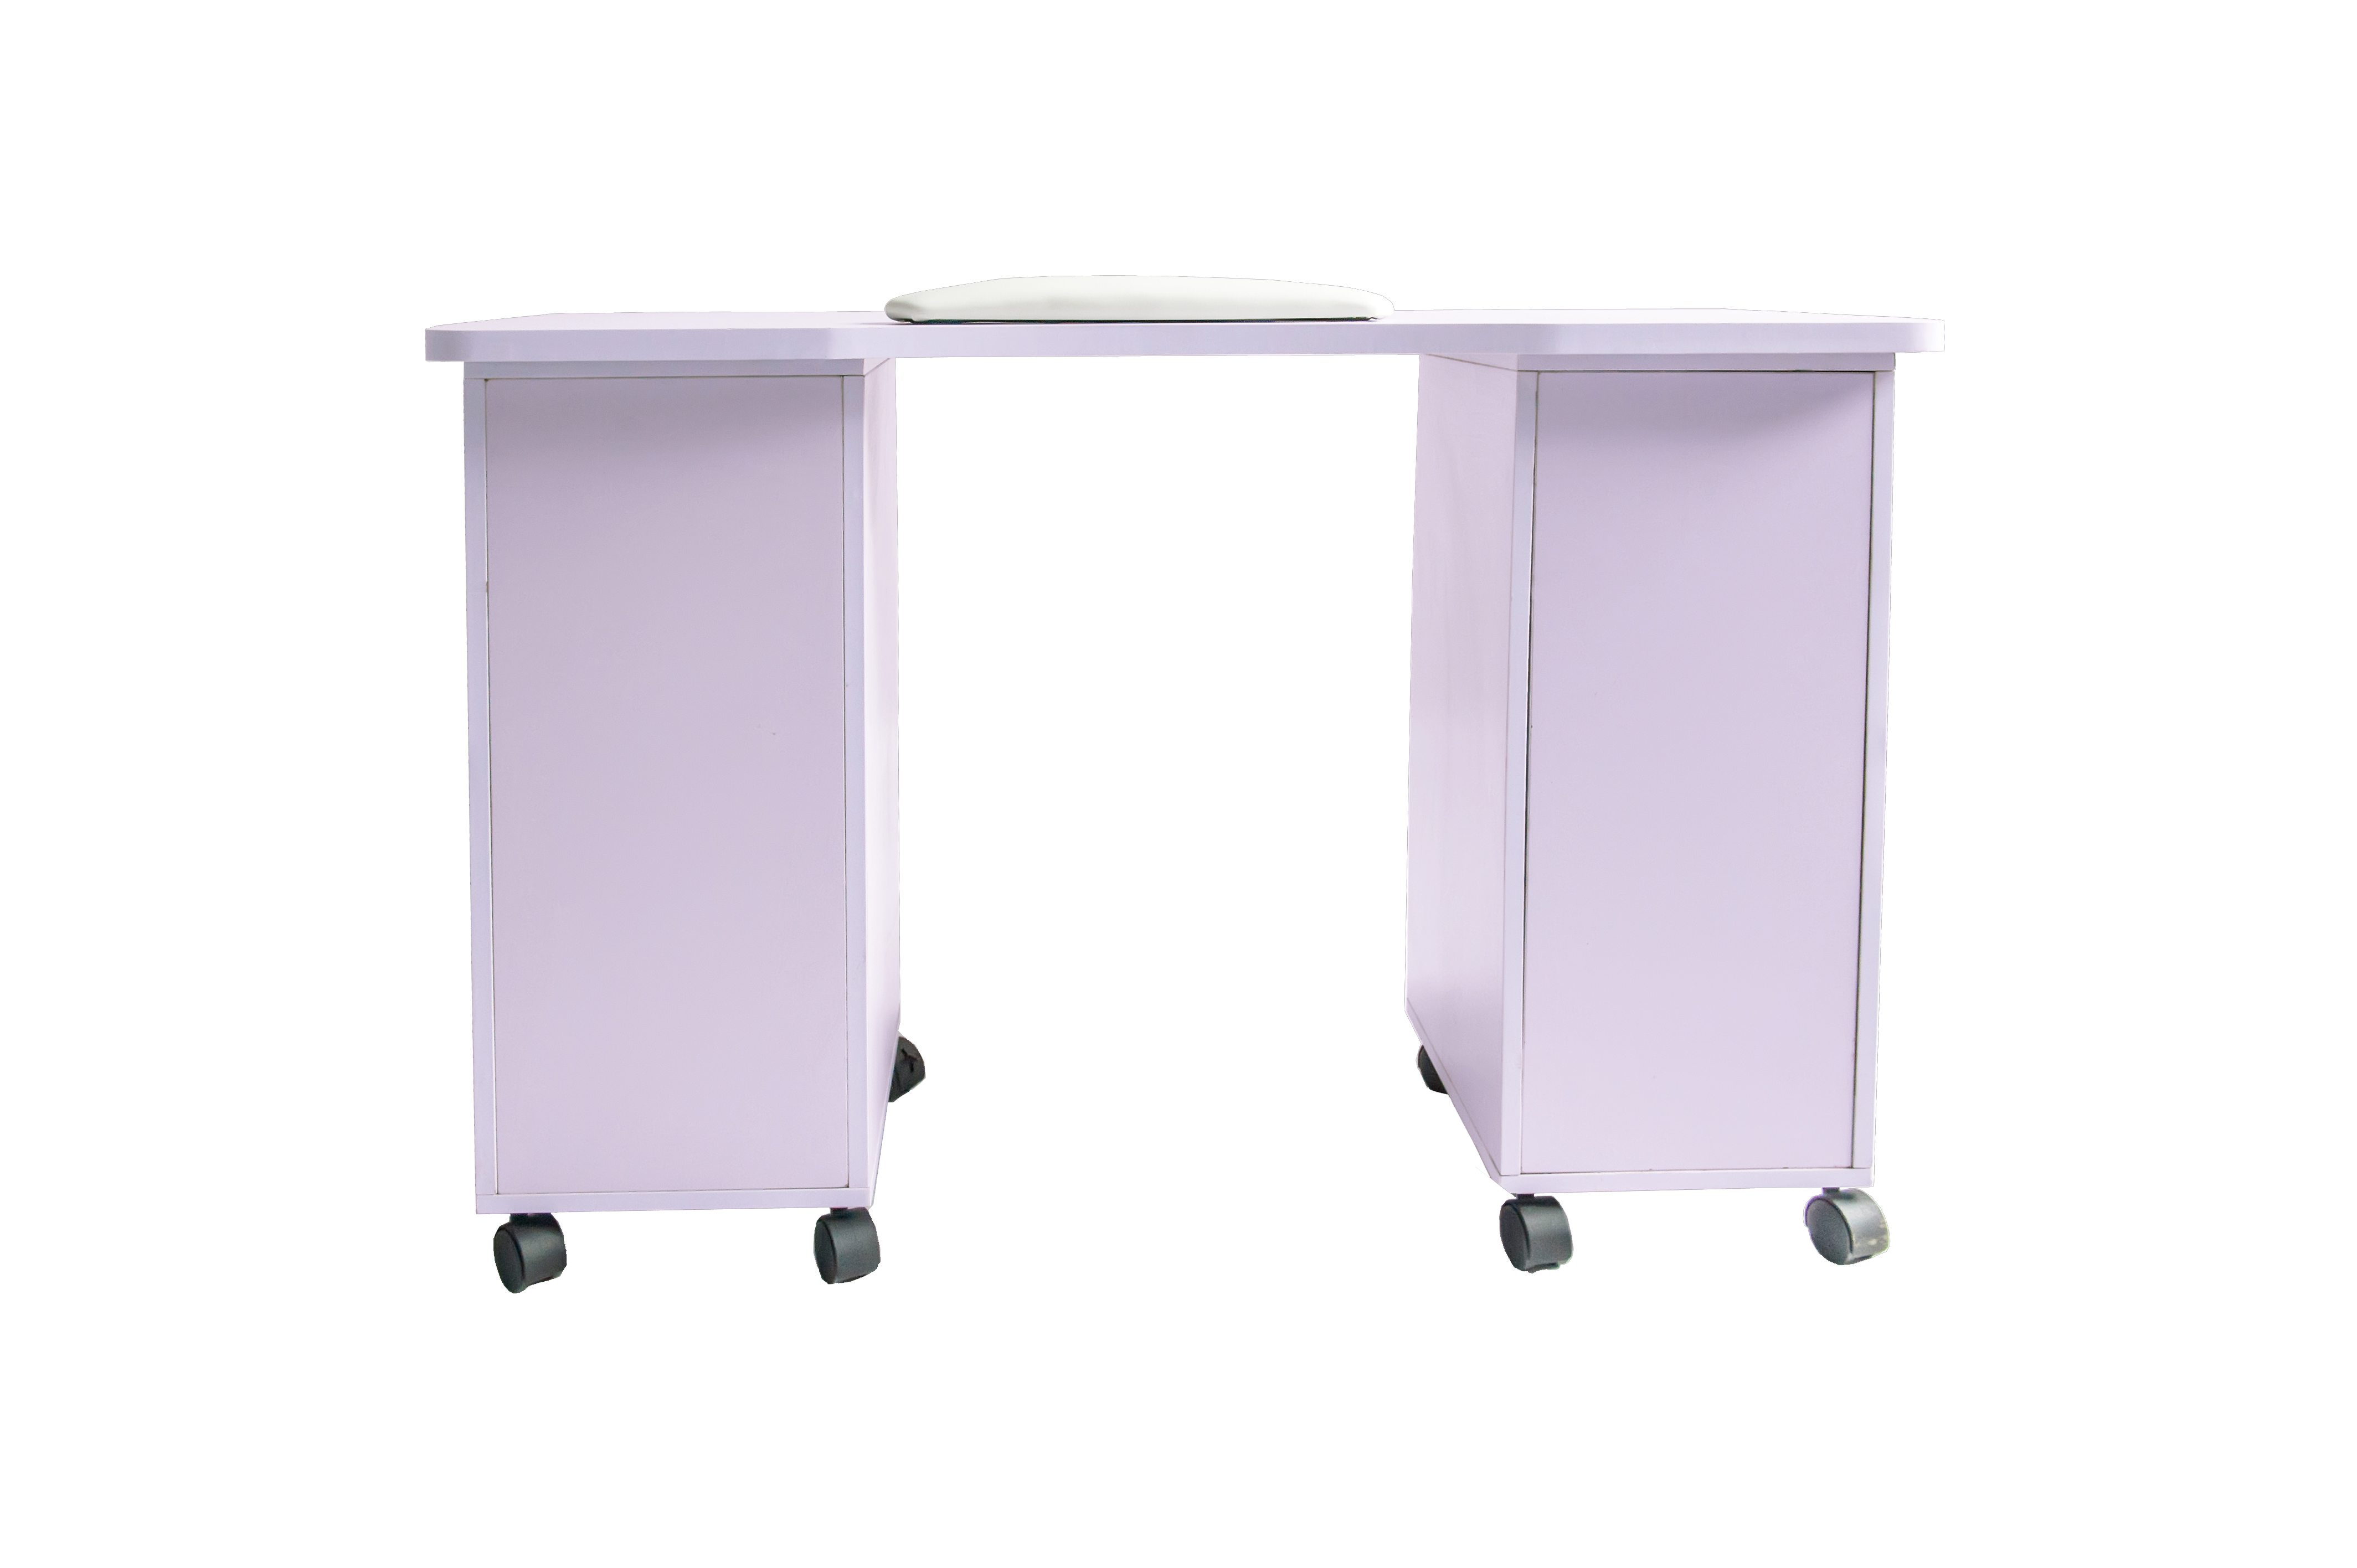 Barberpub purple manicure nail table station spa salon for A and m salon equipment